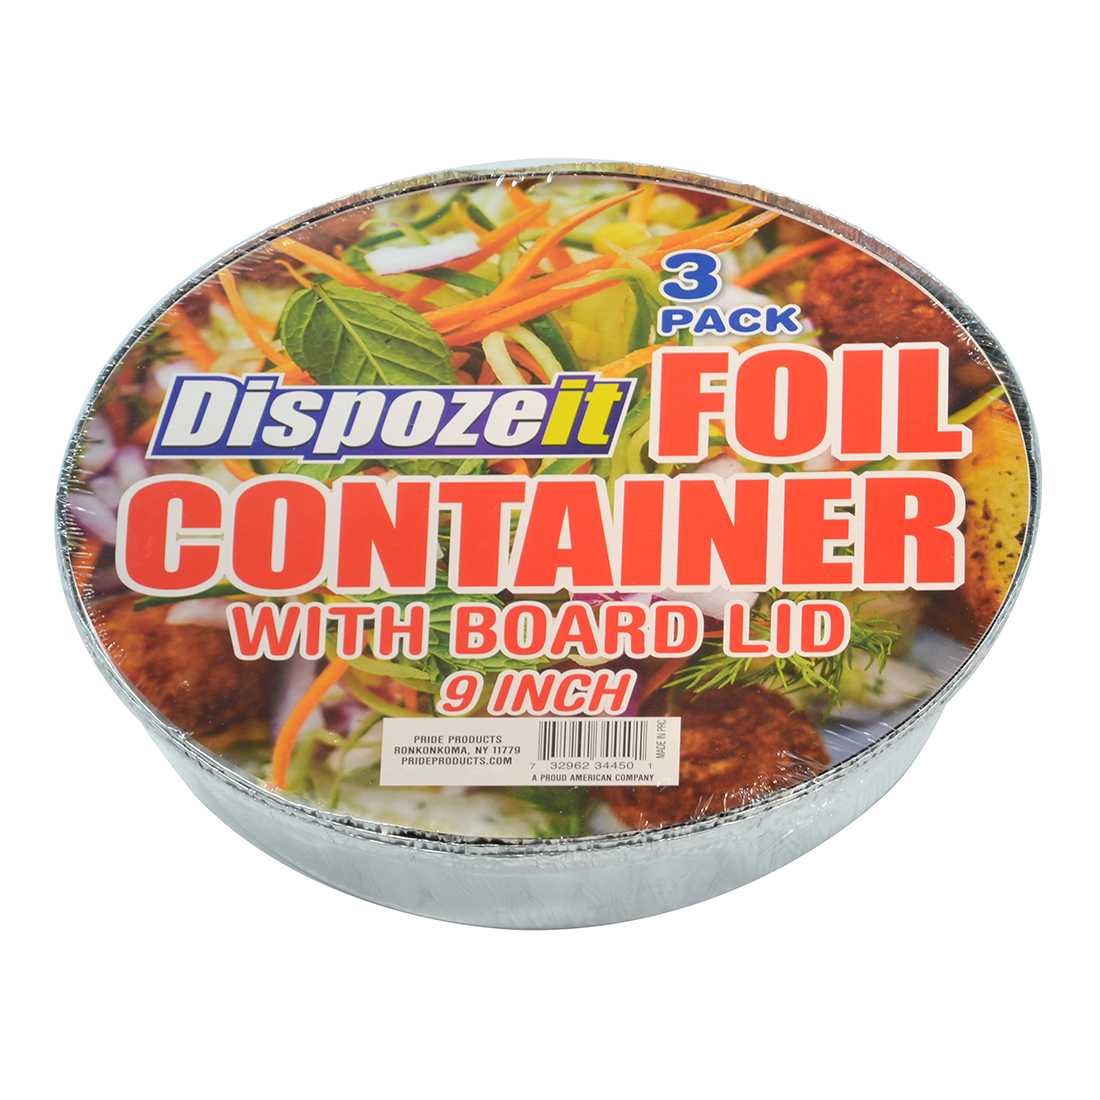 View FOIL CONTAINER 9 INCHES WITH BOARD LID3 PACK